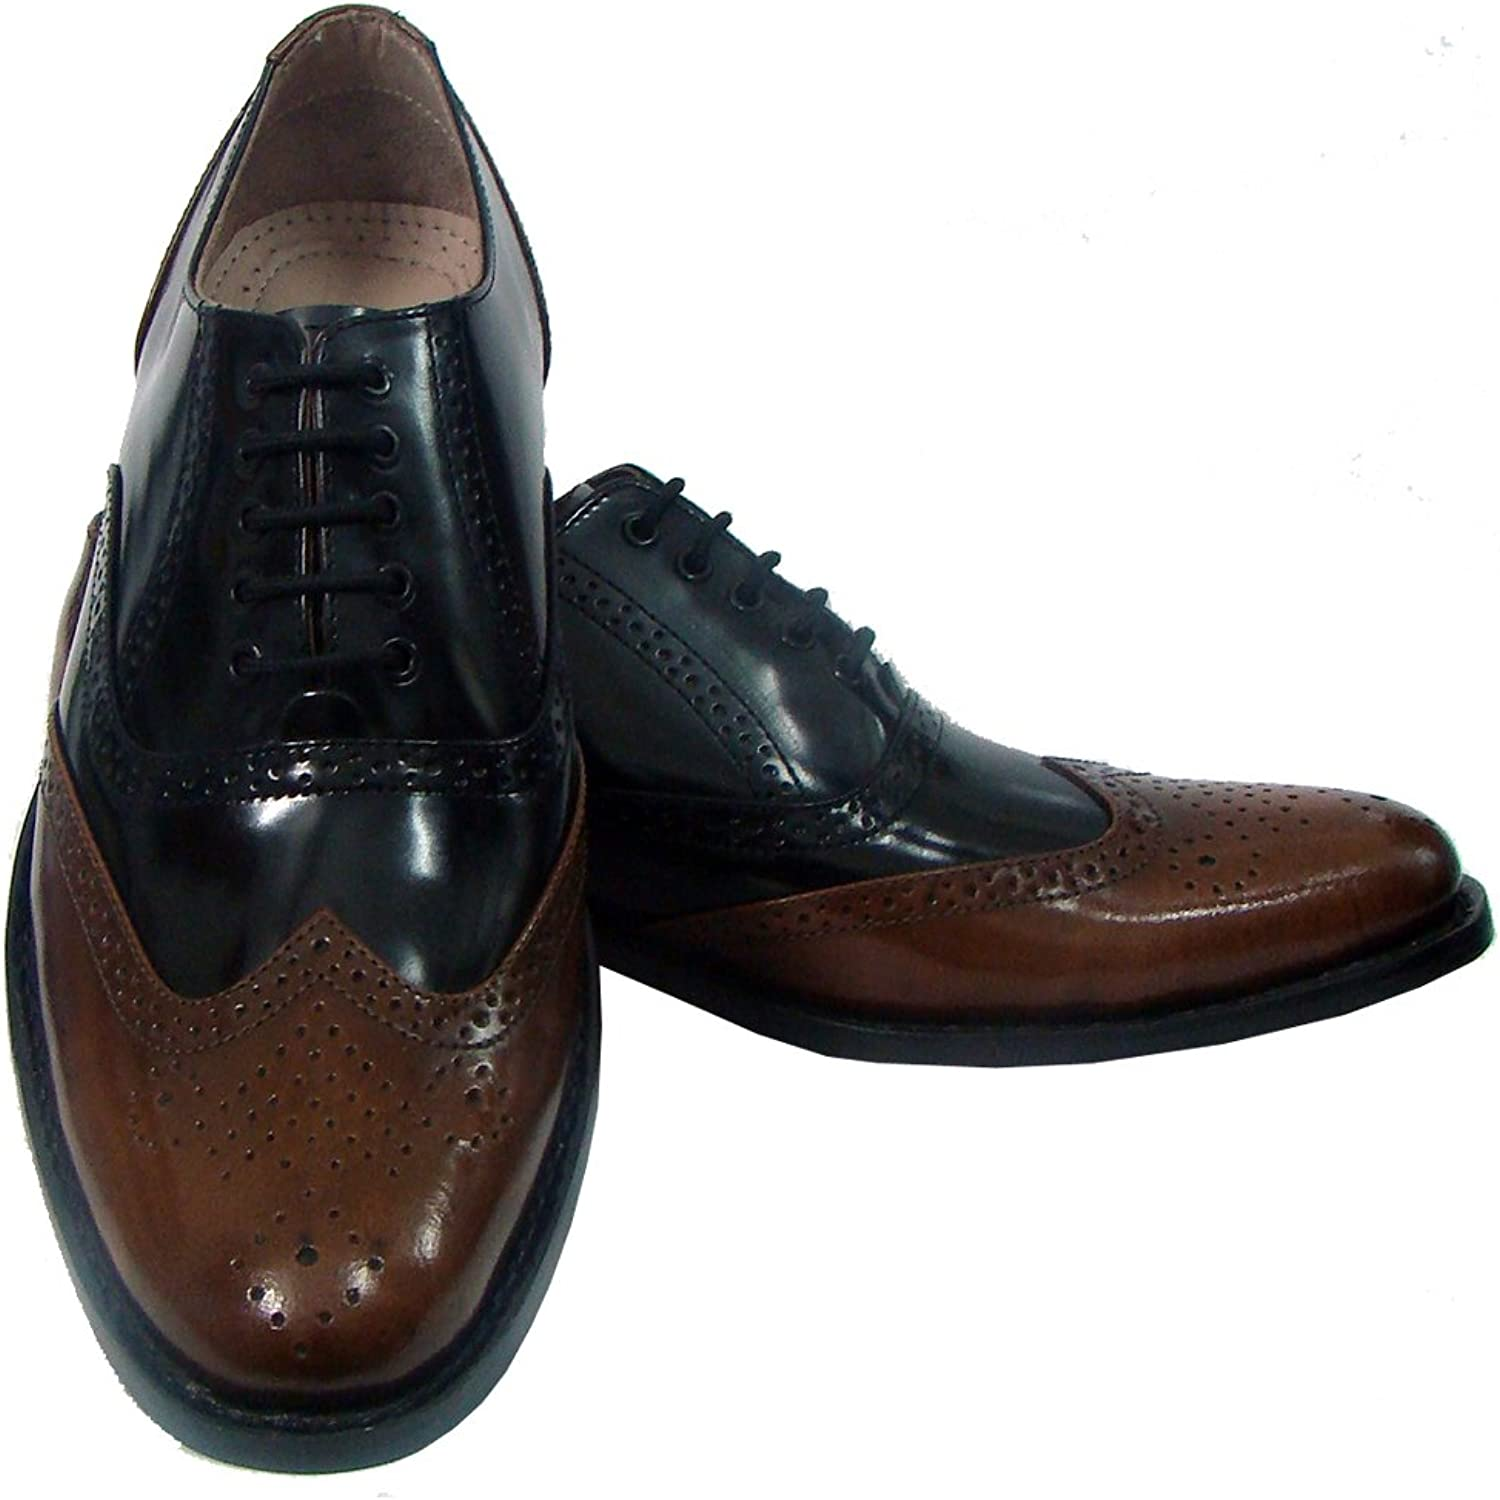 Handmade Goodyear Welted Brown & Black Brogue shoes with silverina Leather Sole, Leather Insole, Fully Leather Lining and Memory Foam Cushioning for Men by ASM. Sizes 4 to 15 UK Article   H114